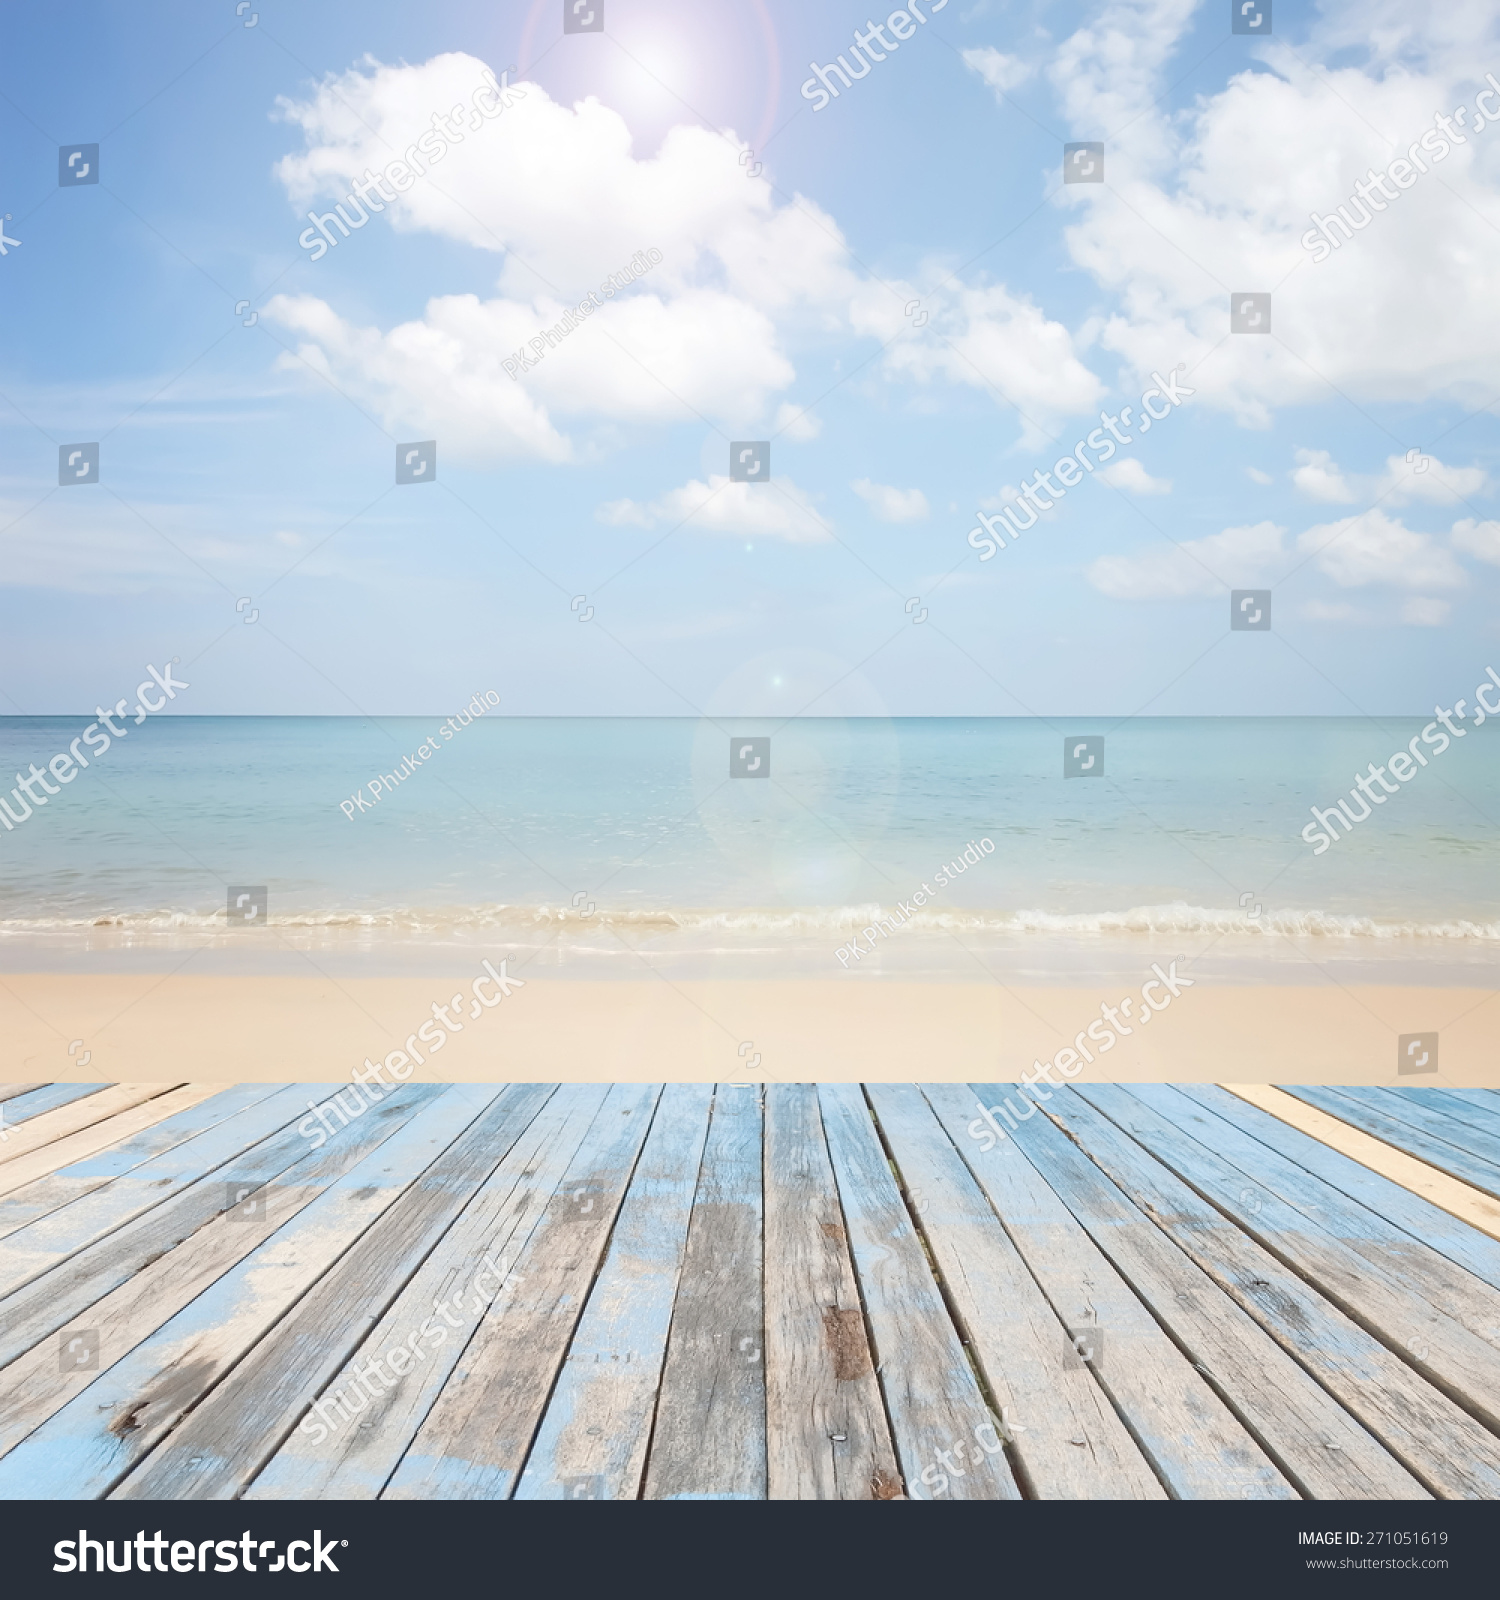 Wood Floor On Beach Sea And Blue Sky For Background Stock: Wooden Floor Beautiful Blue Sky Scenery Stock Photo